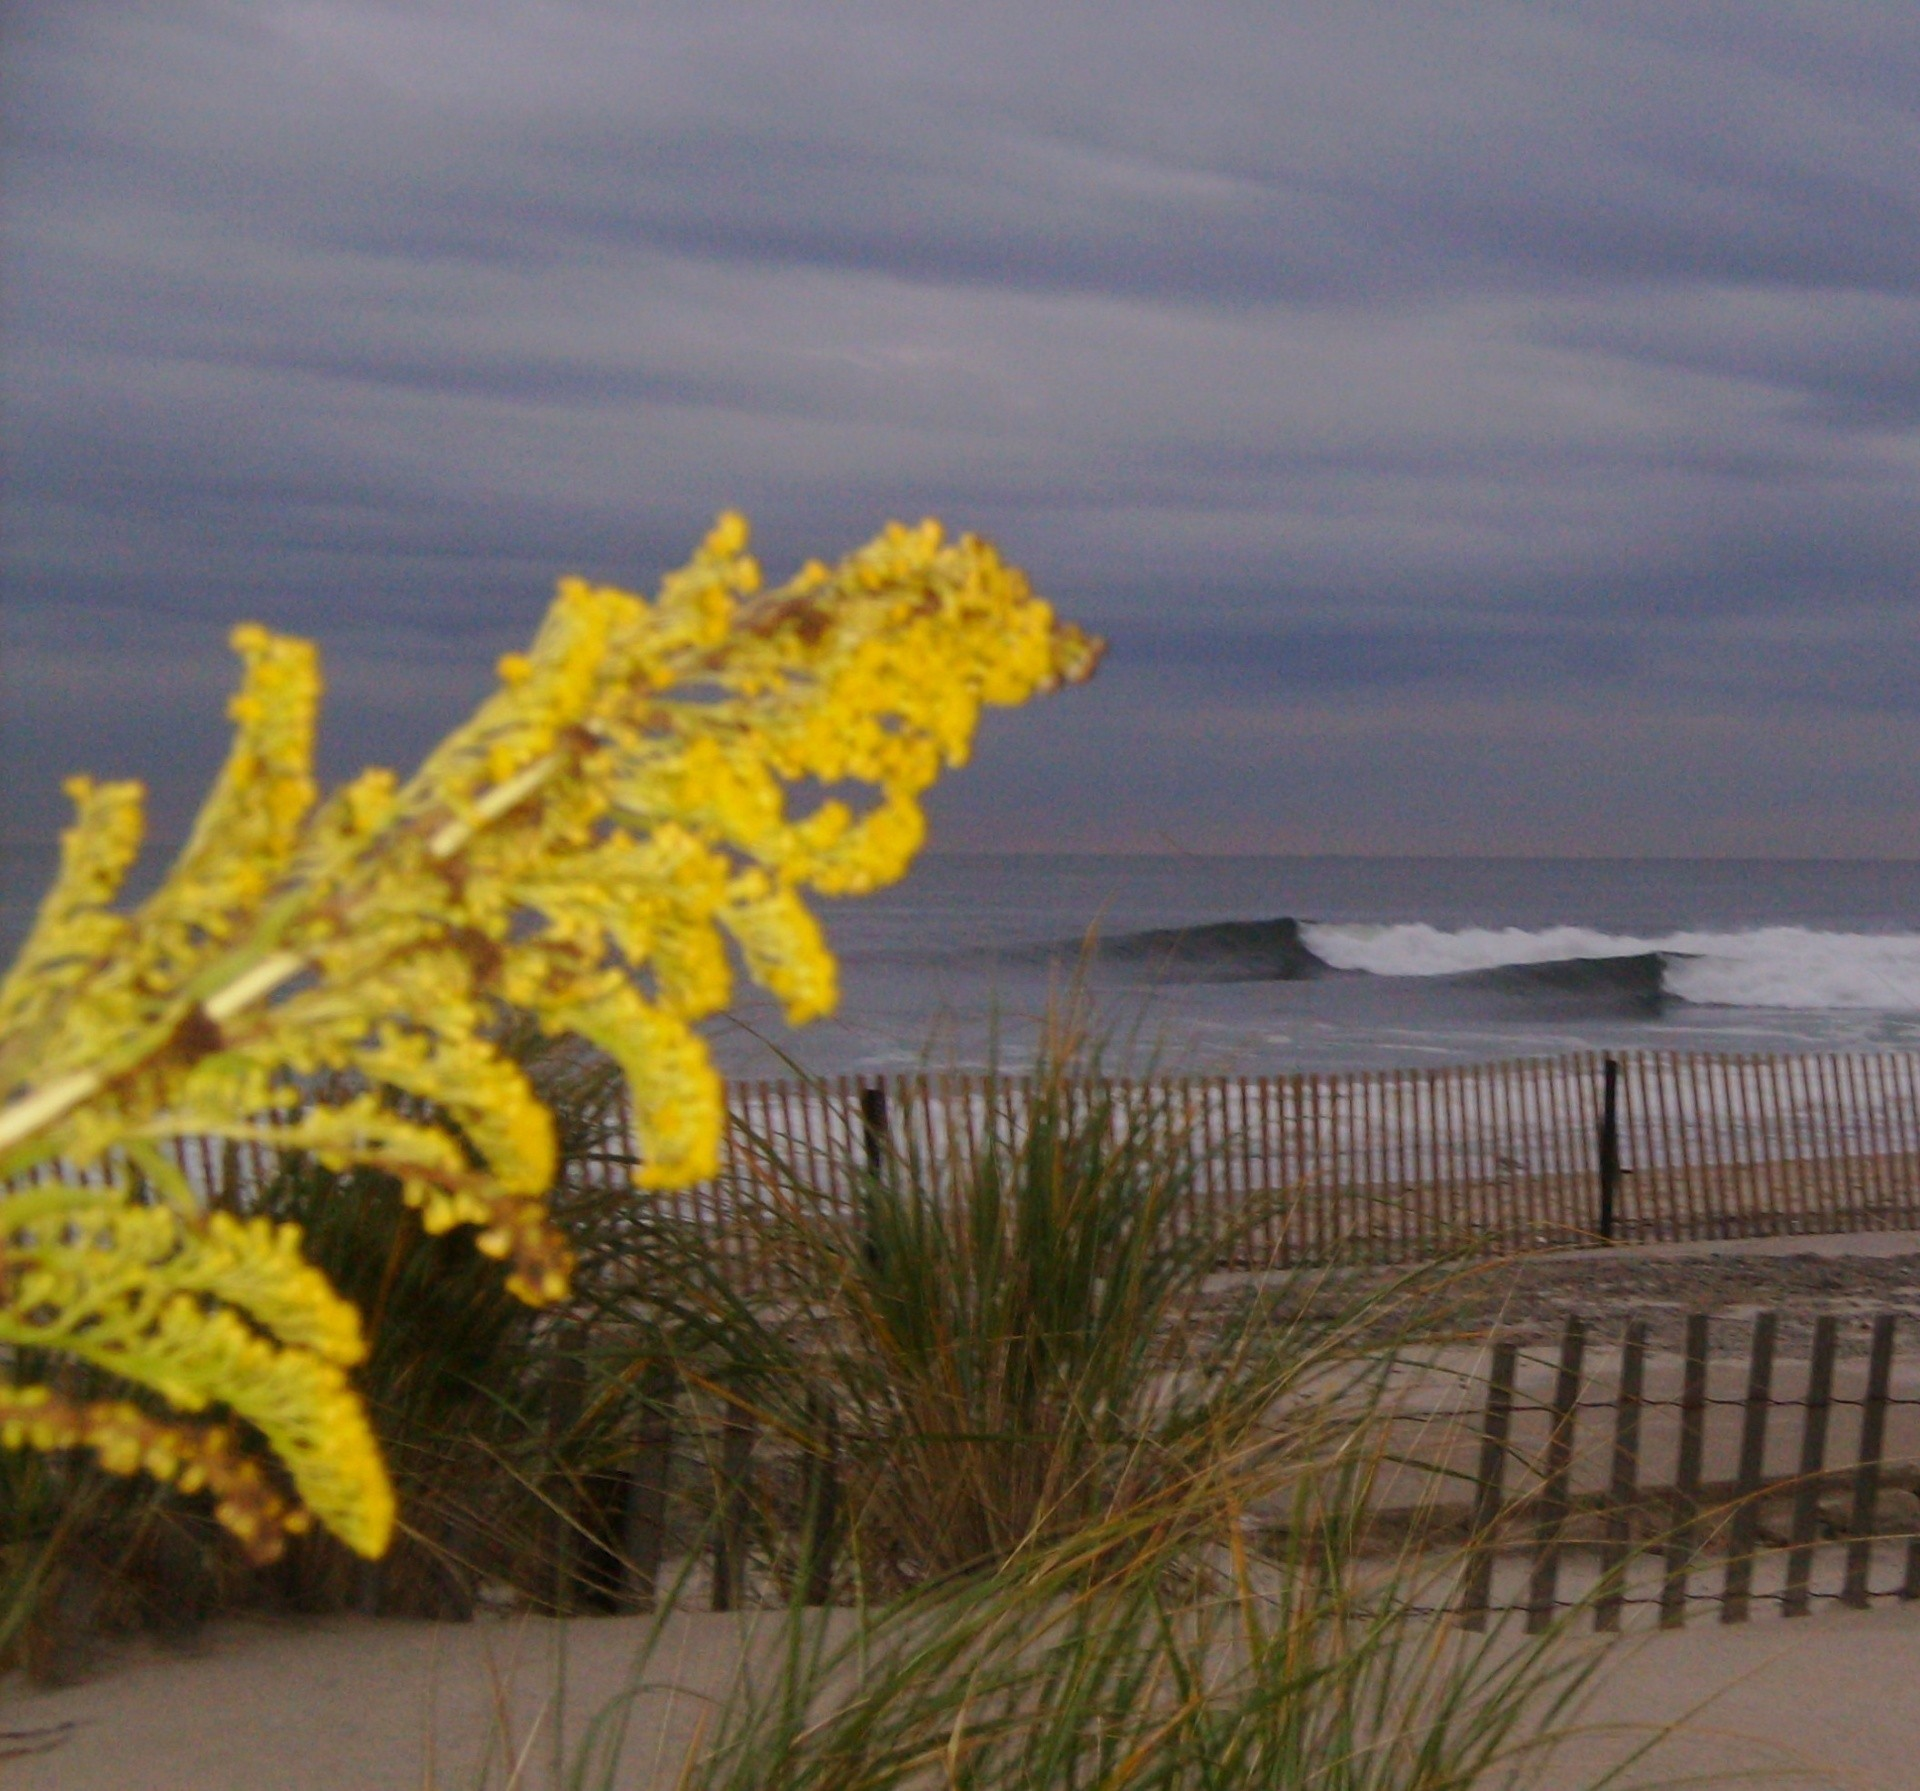 Dean O'Keeffe's photo of Belmar